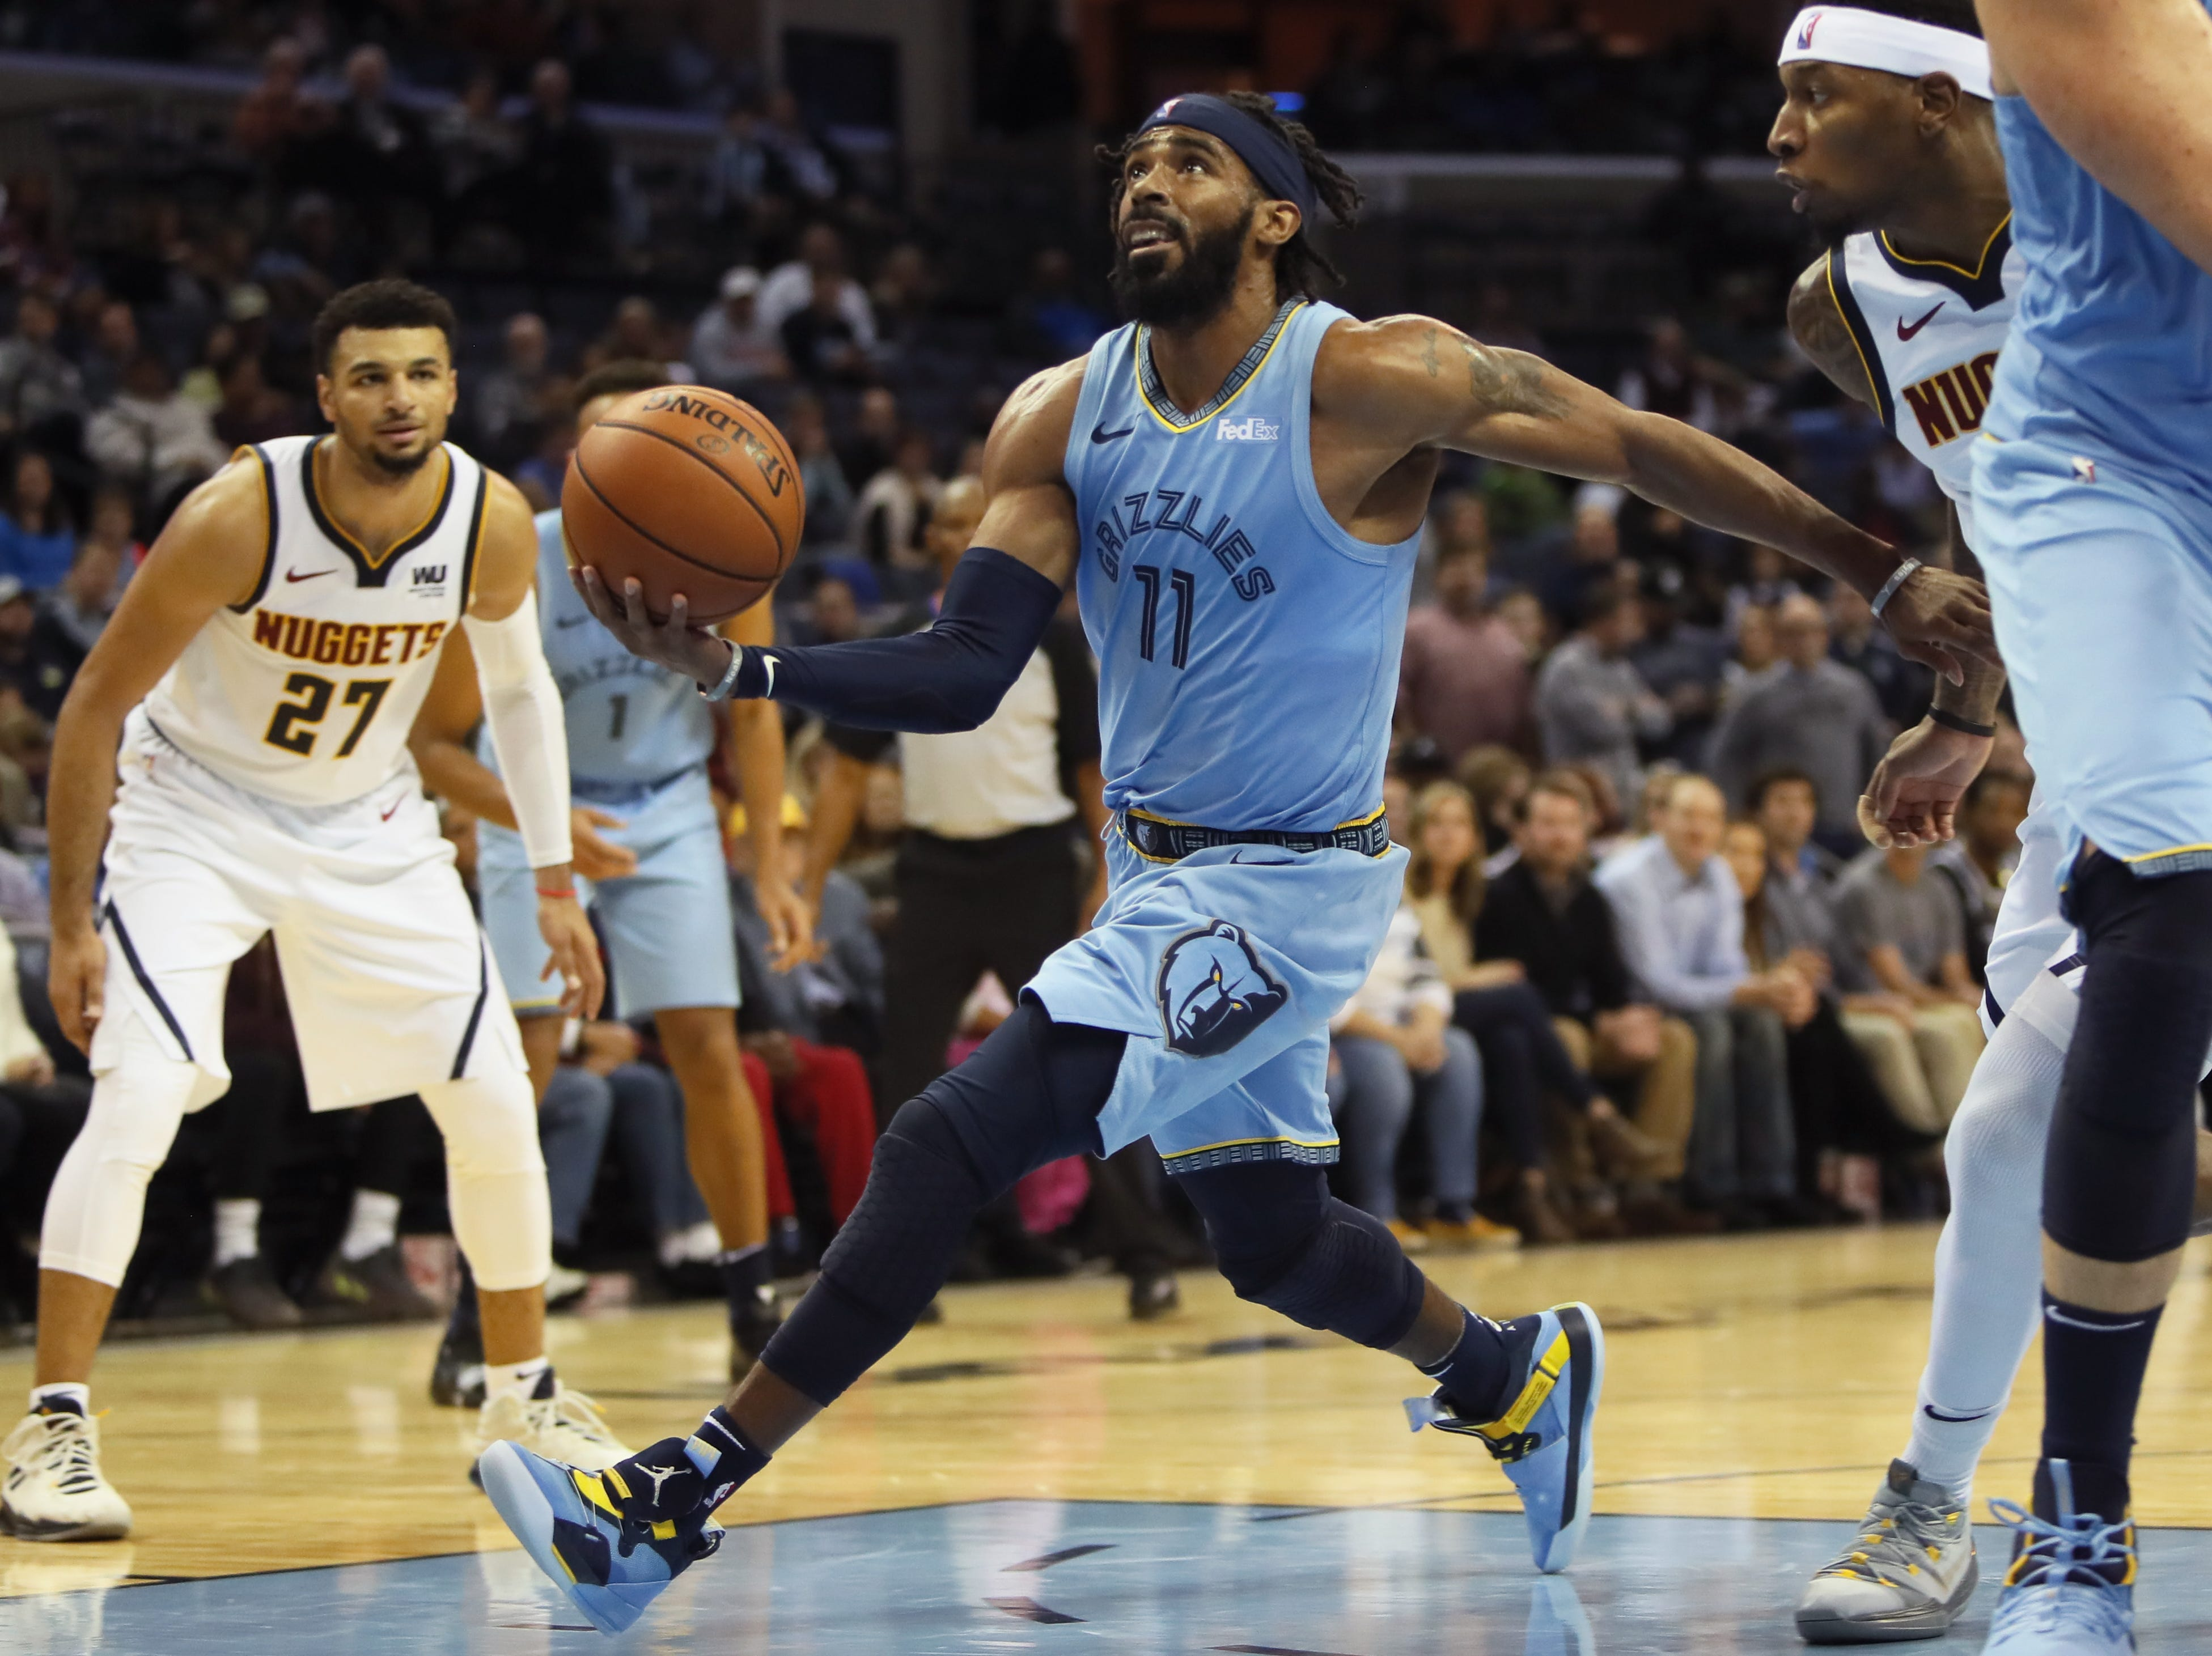 Memphis Grizzlies guard Mike Conley drives the lane against the Denver Nuggets during their game at the FedExForum on Wednesday, November 7, 2018.